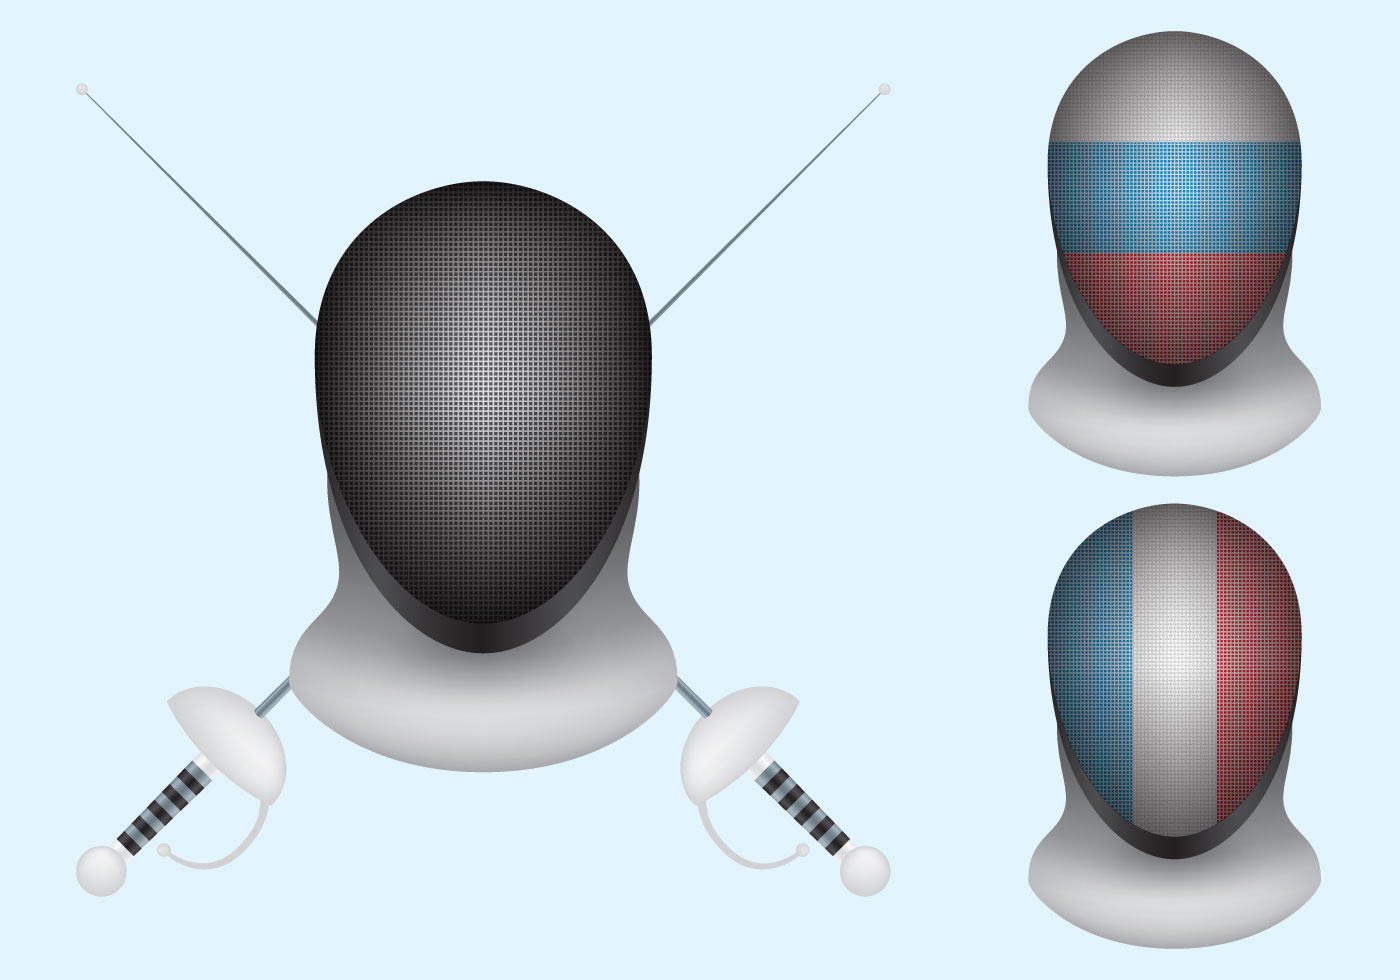 Fencing mask clipart picture freeuse stock Fencing Mask Free Vector Art - (31 Free Downloads) picture freeuse stock